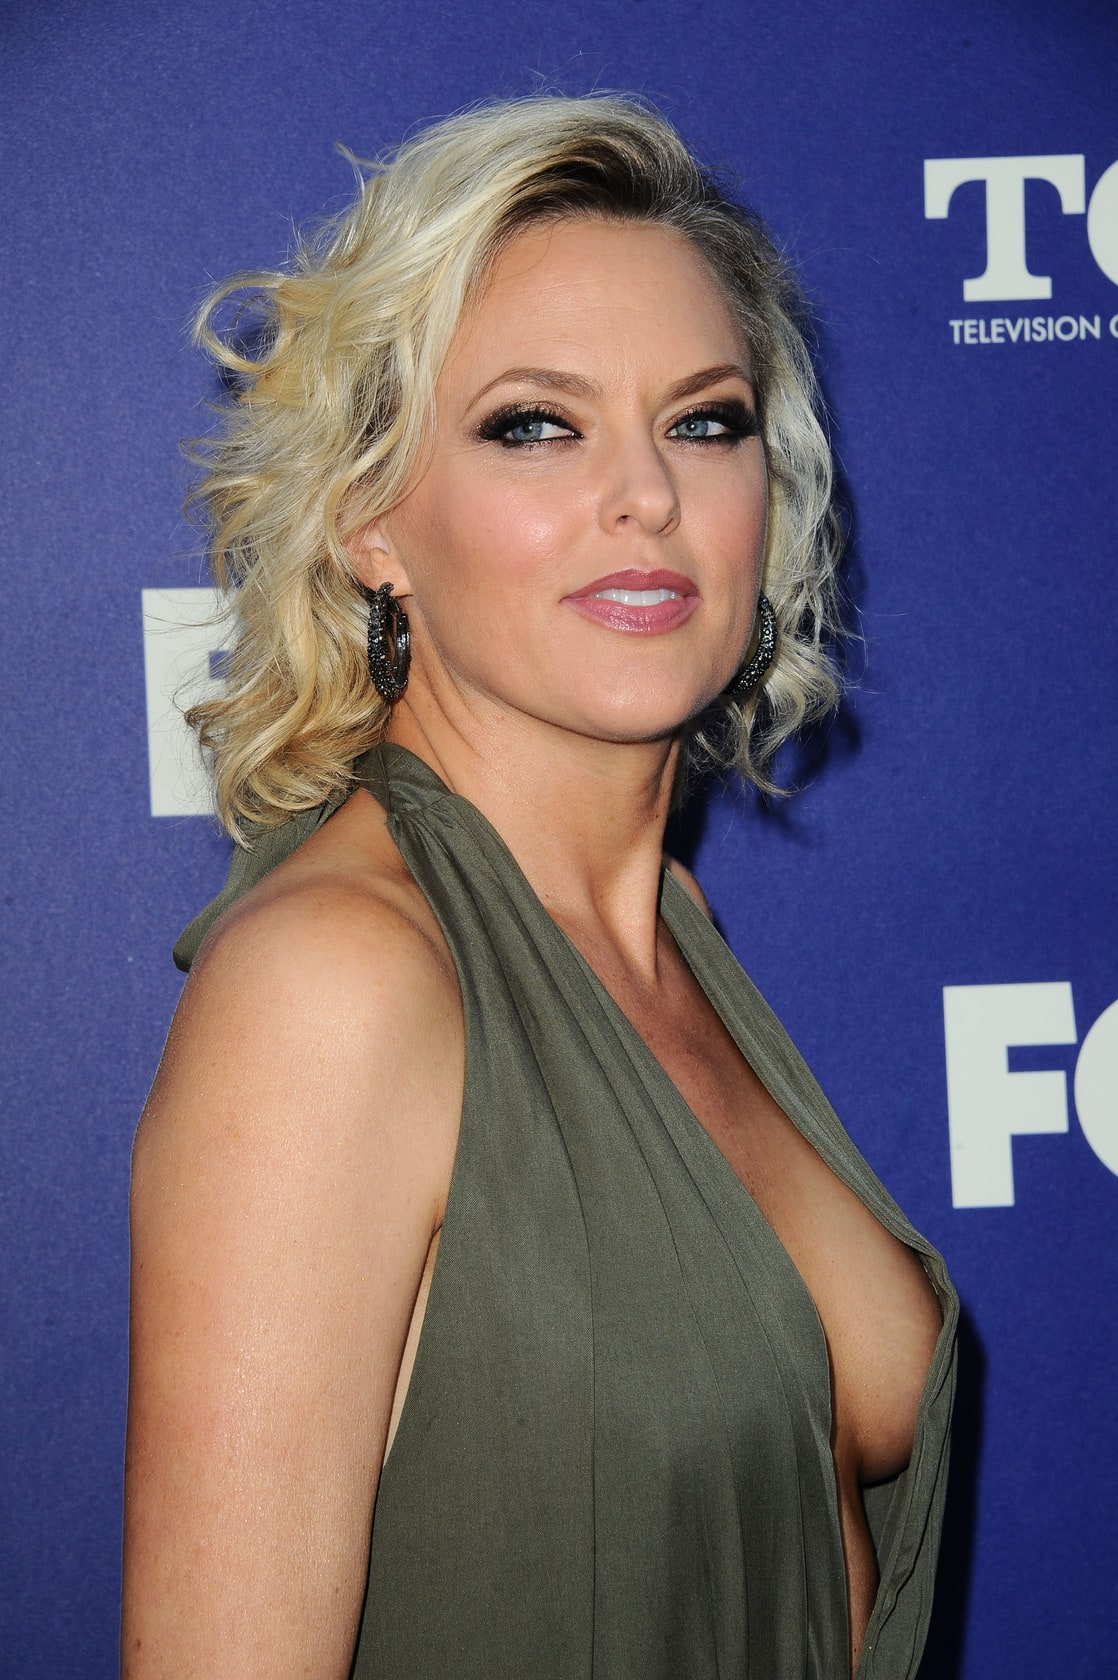 Fotos Elaine Hendrix naked (71 photo), Topless, Paparazzi, Boobs, cleavage 2020